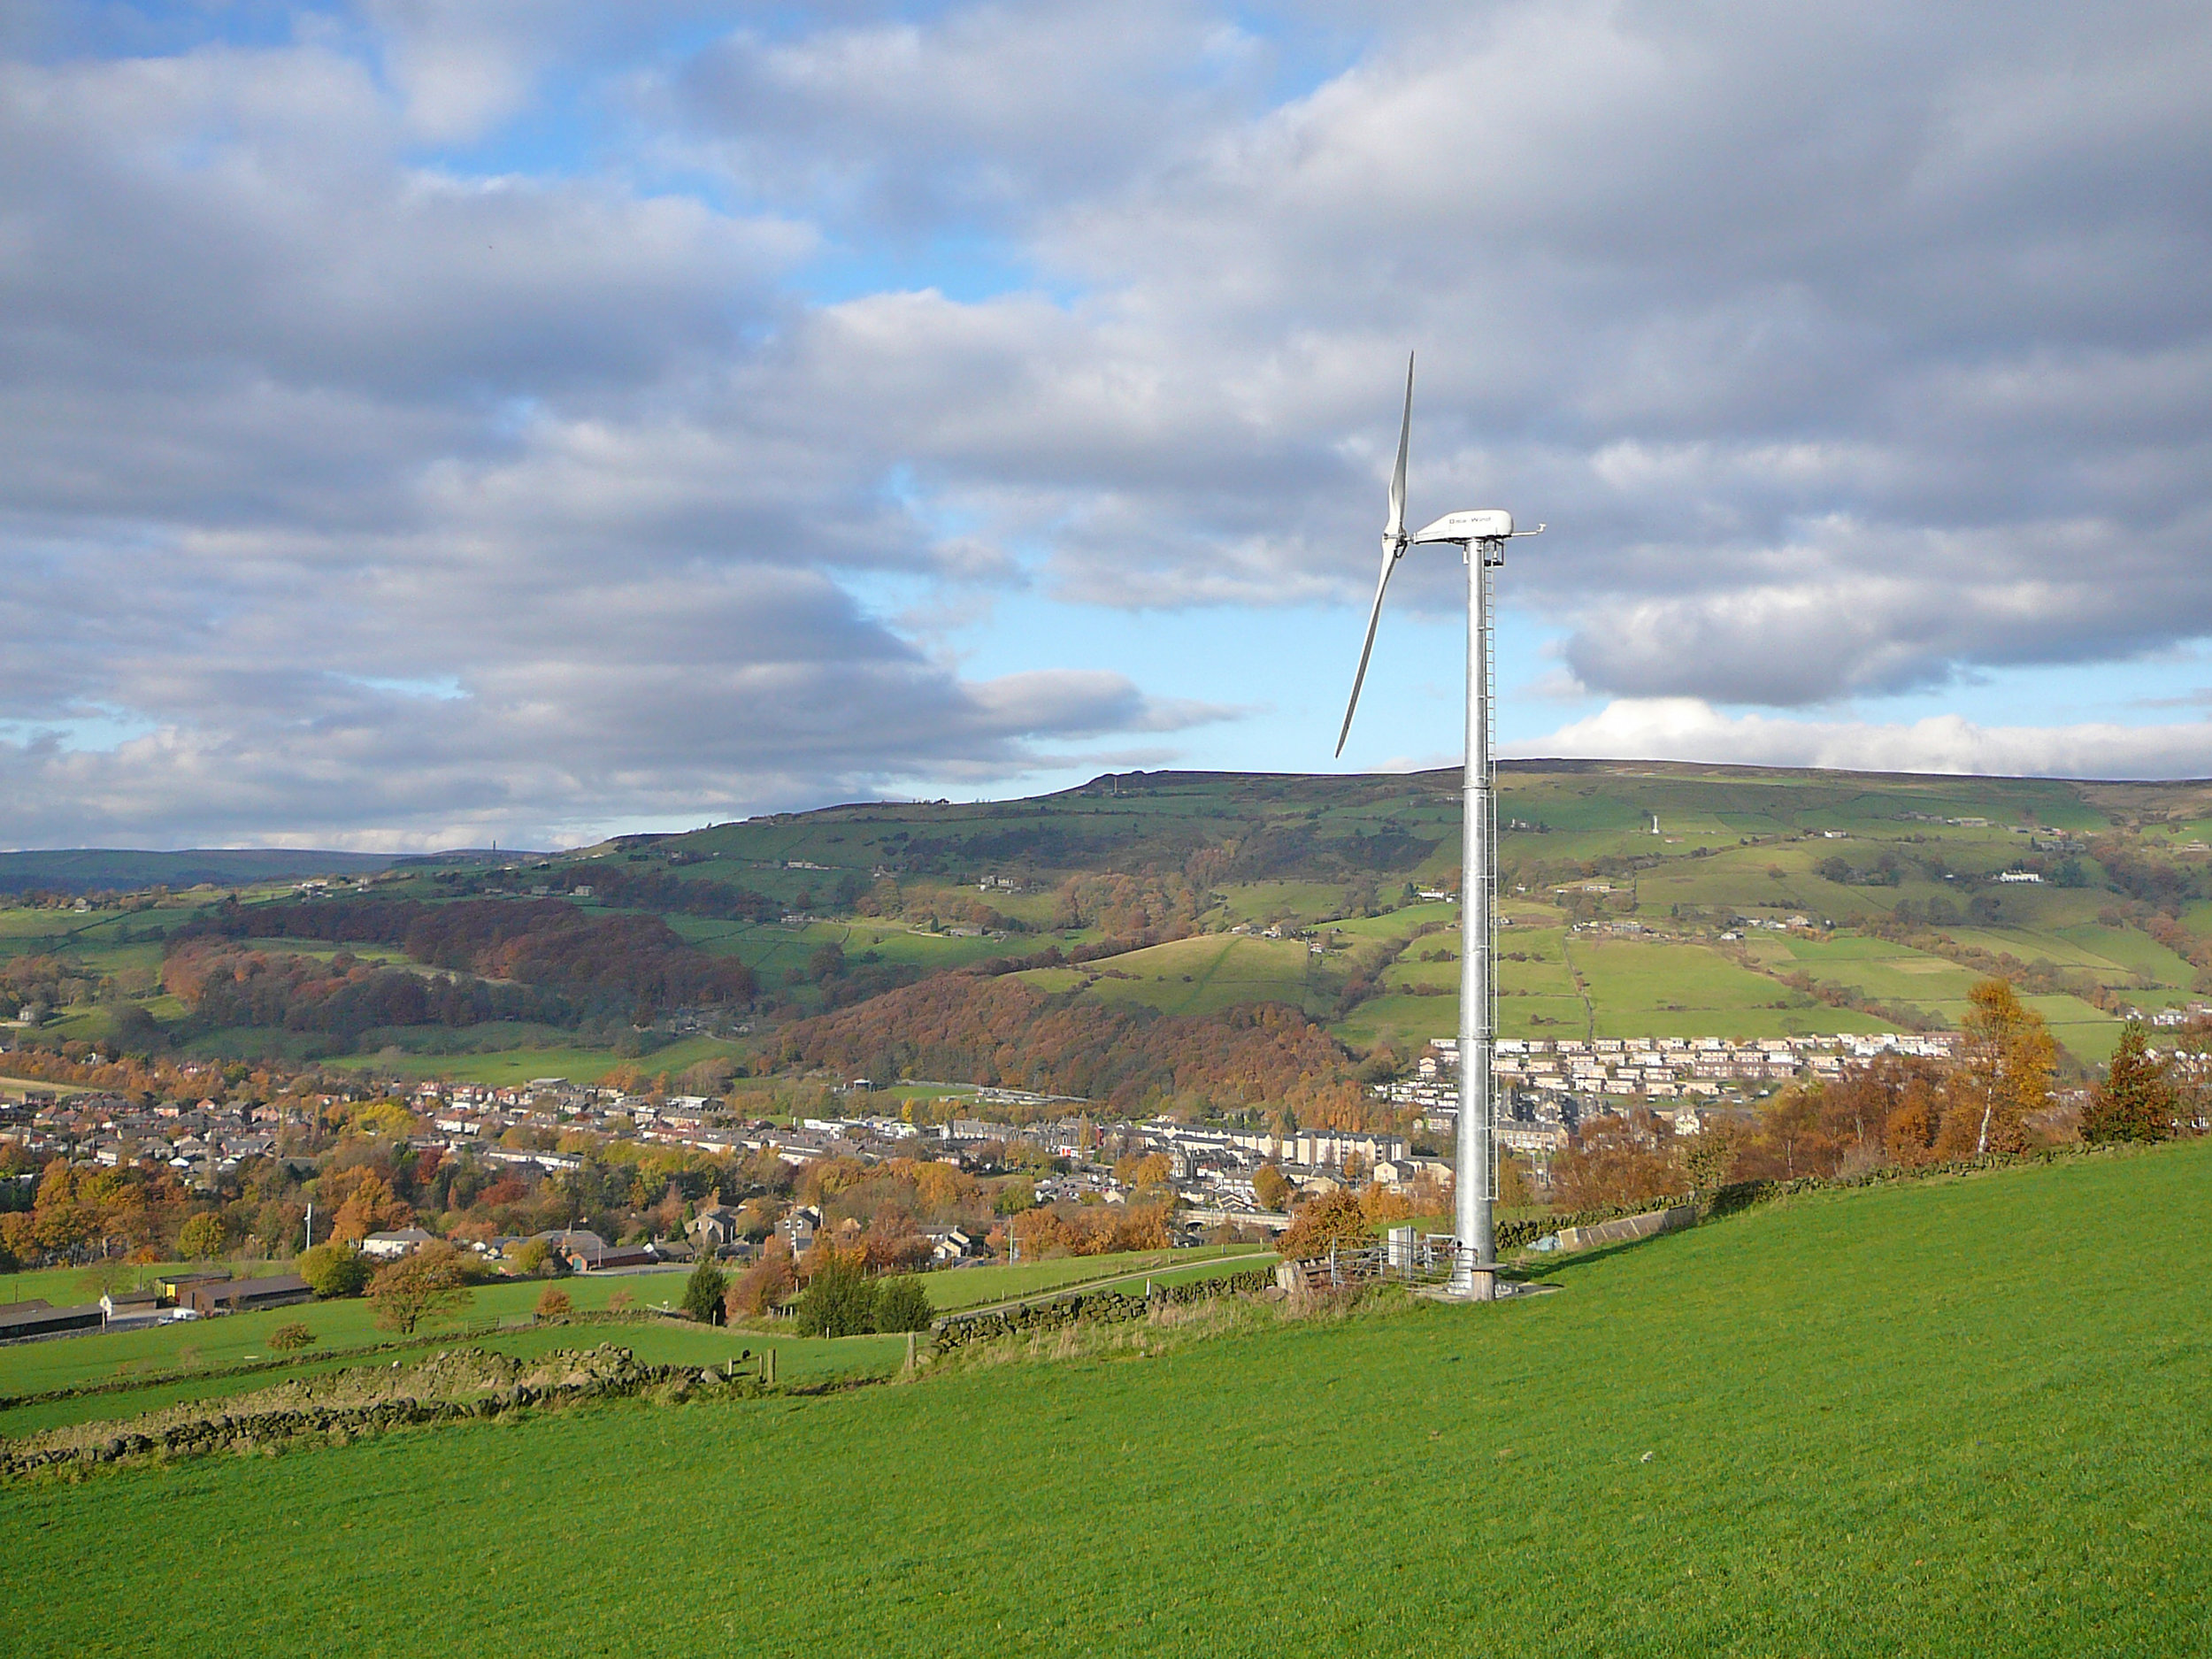 A wind turbine operating in Germany. Despite their ambitious goals, emissions have risen in Germany.  Photo by Tim Green from Flickr Creative Commons